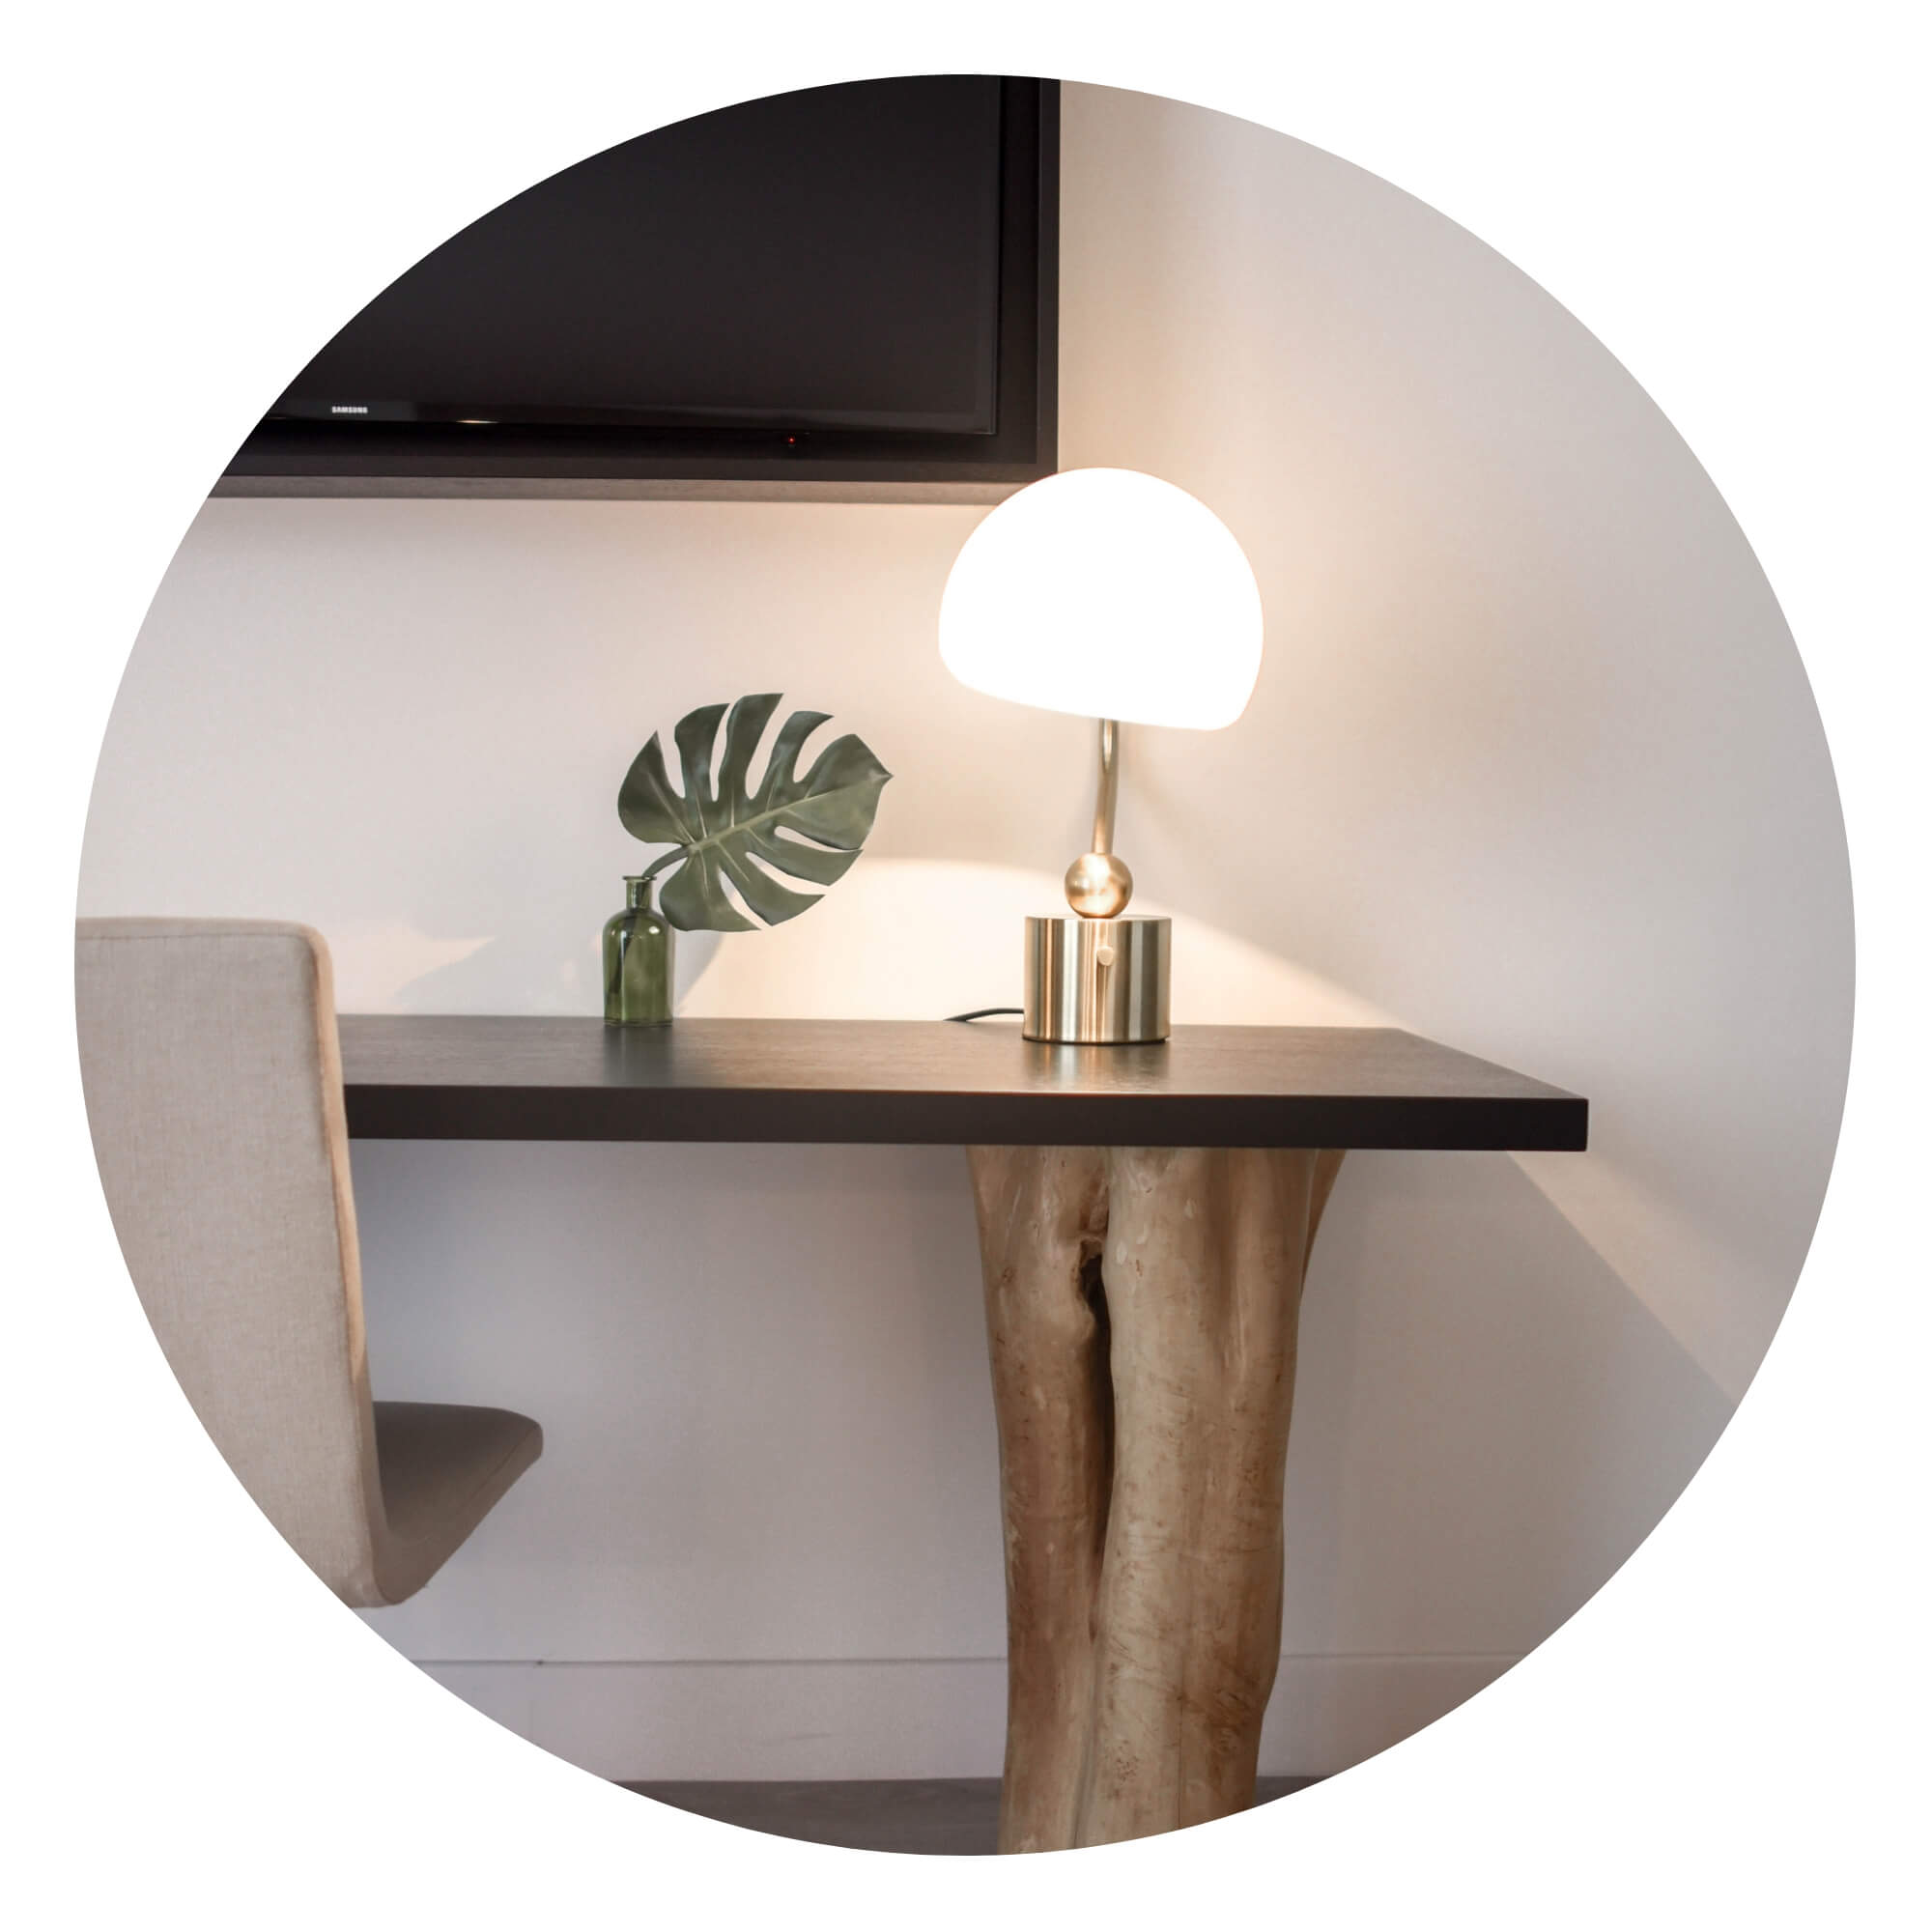 Two Design Lovers Table Category circle